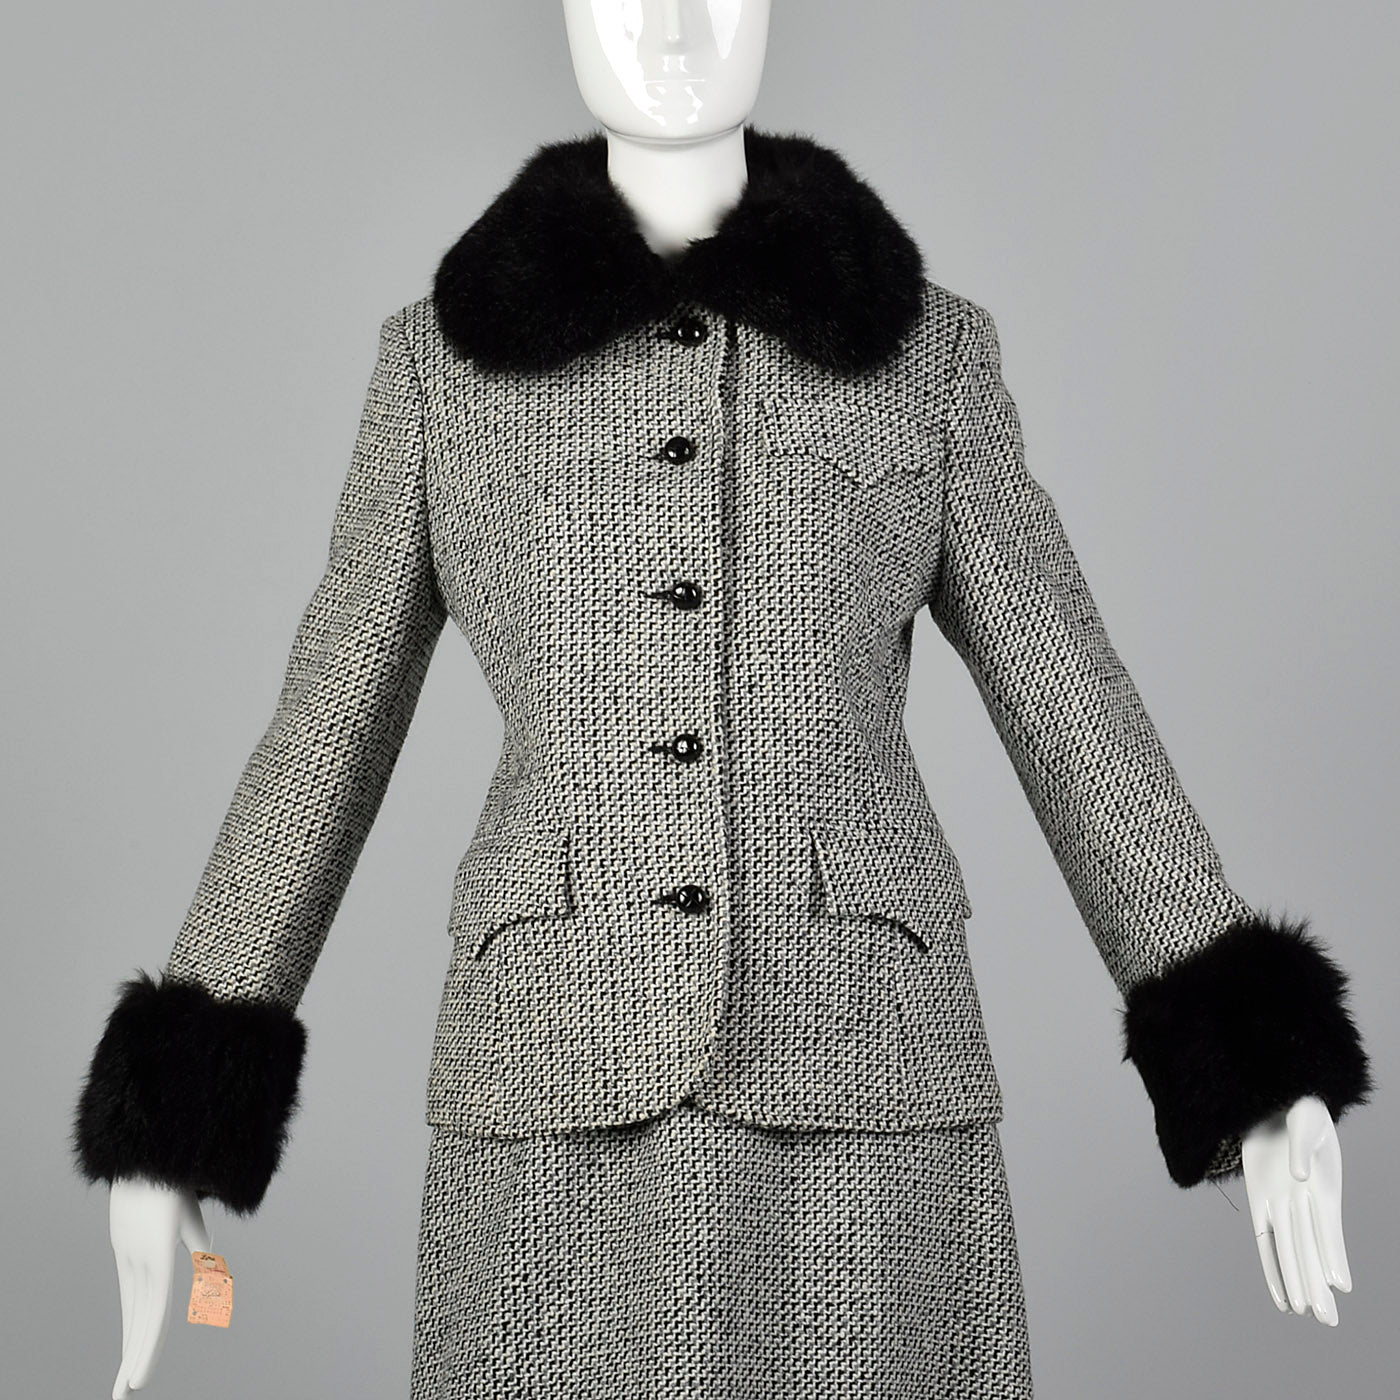 1970s Tweed Skirt Suit with Fur Trim